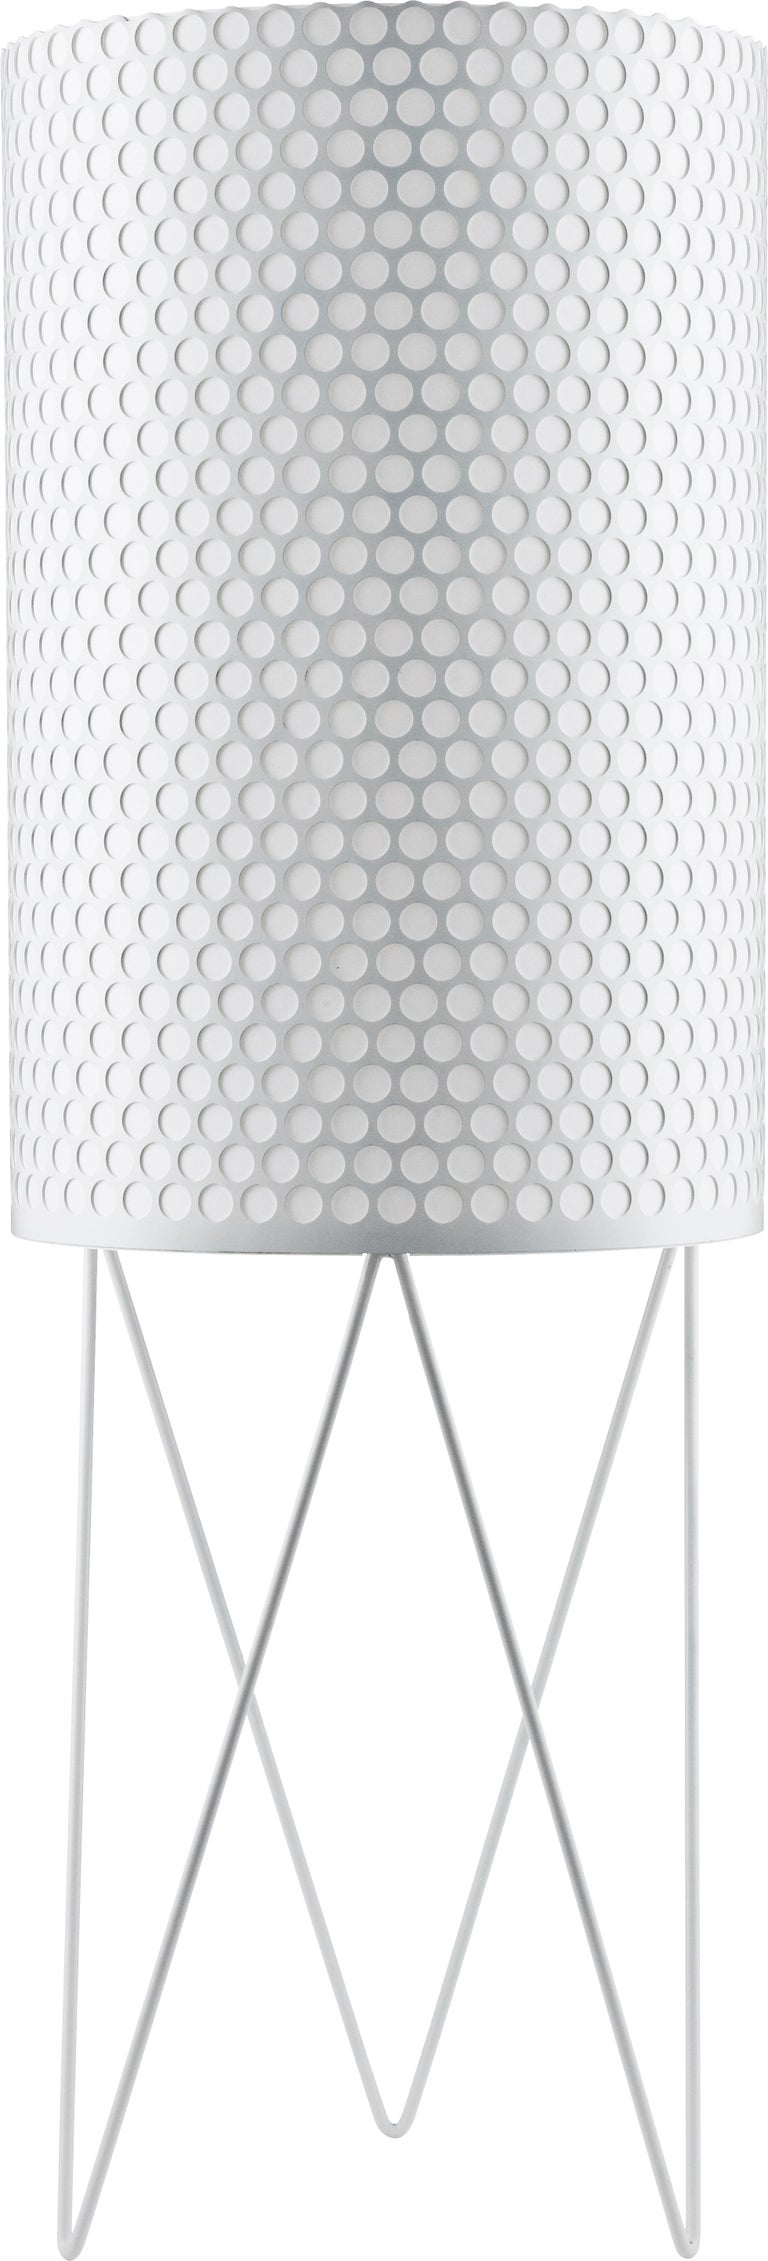 Barba Corsini 'PD2' Pedrera floor lamp in black. Executed in a black painted perforated metal shade with white interior diffuser.